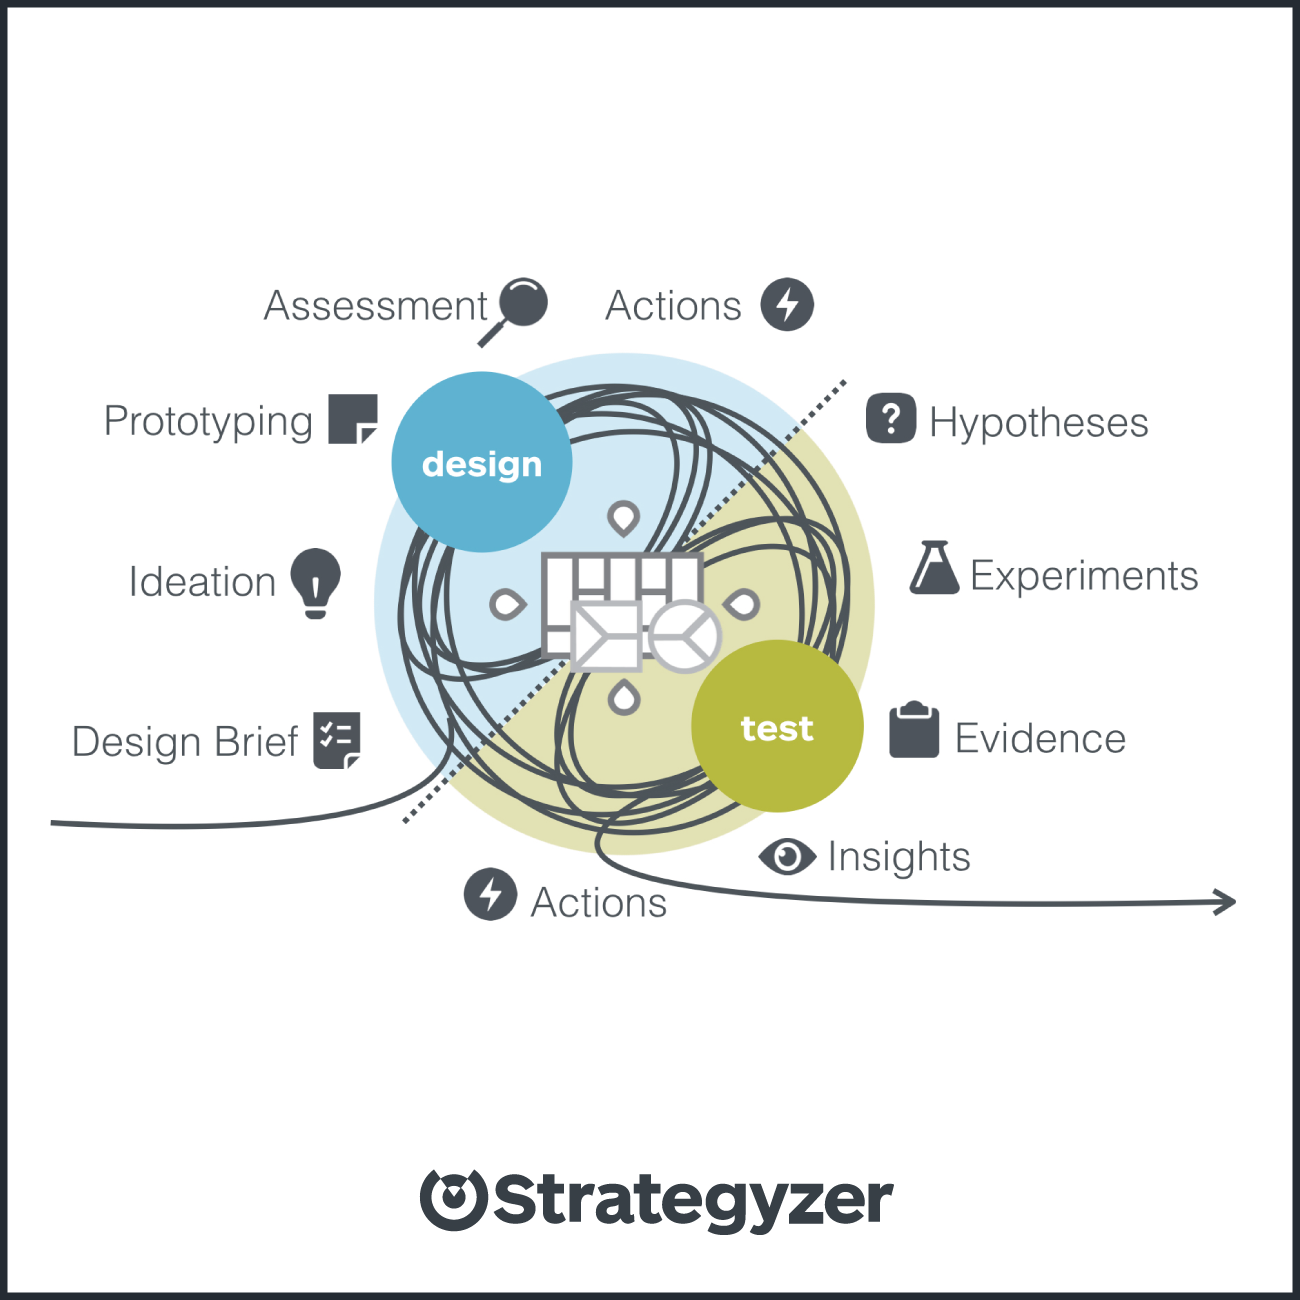 strategyzer-blog-book-visual-2.png